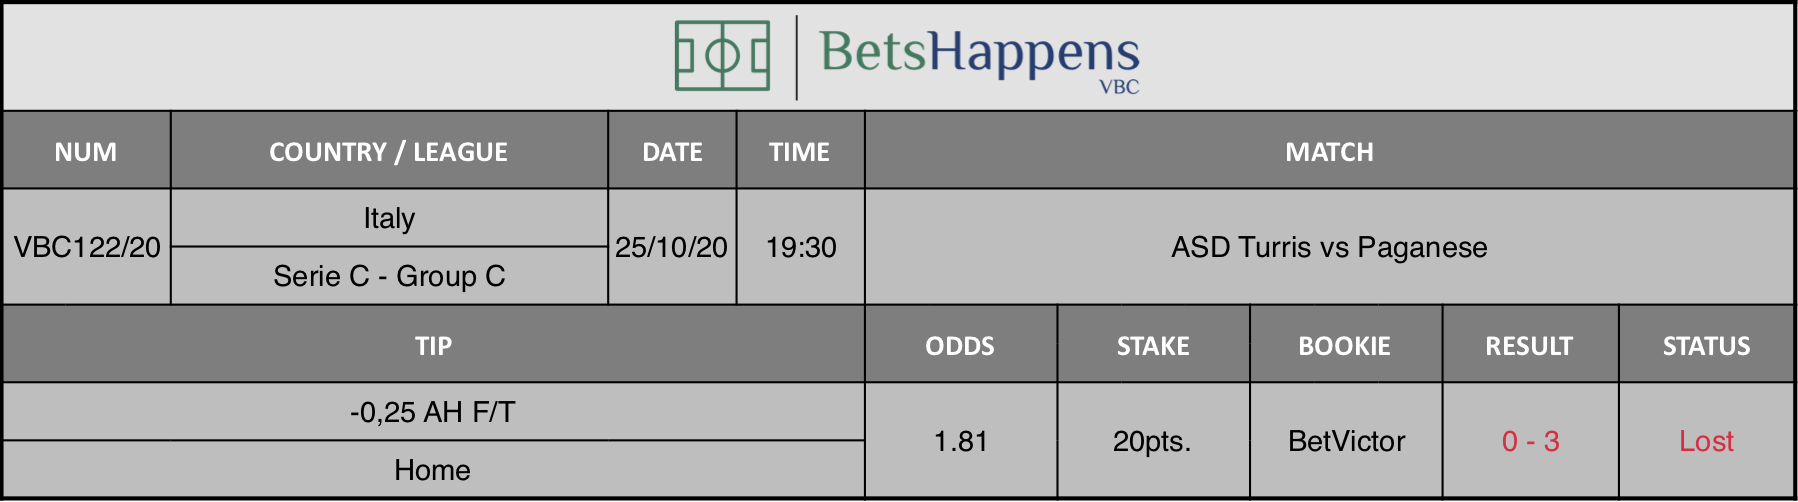 Results of our advice for the ASD Turris vs Paganese match in which -0.25 AH F / T Home is recommended.